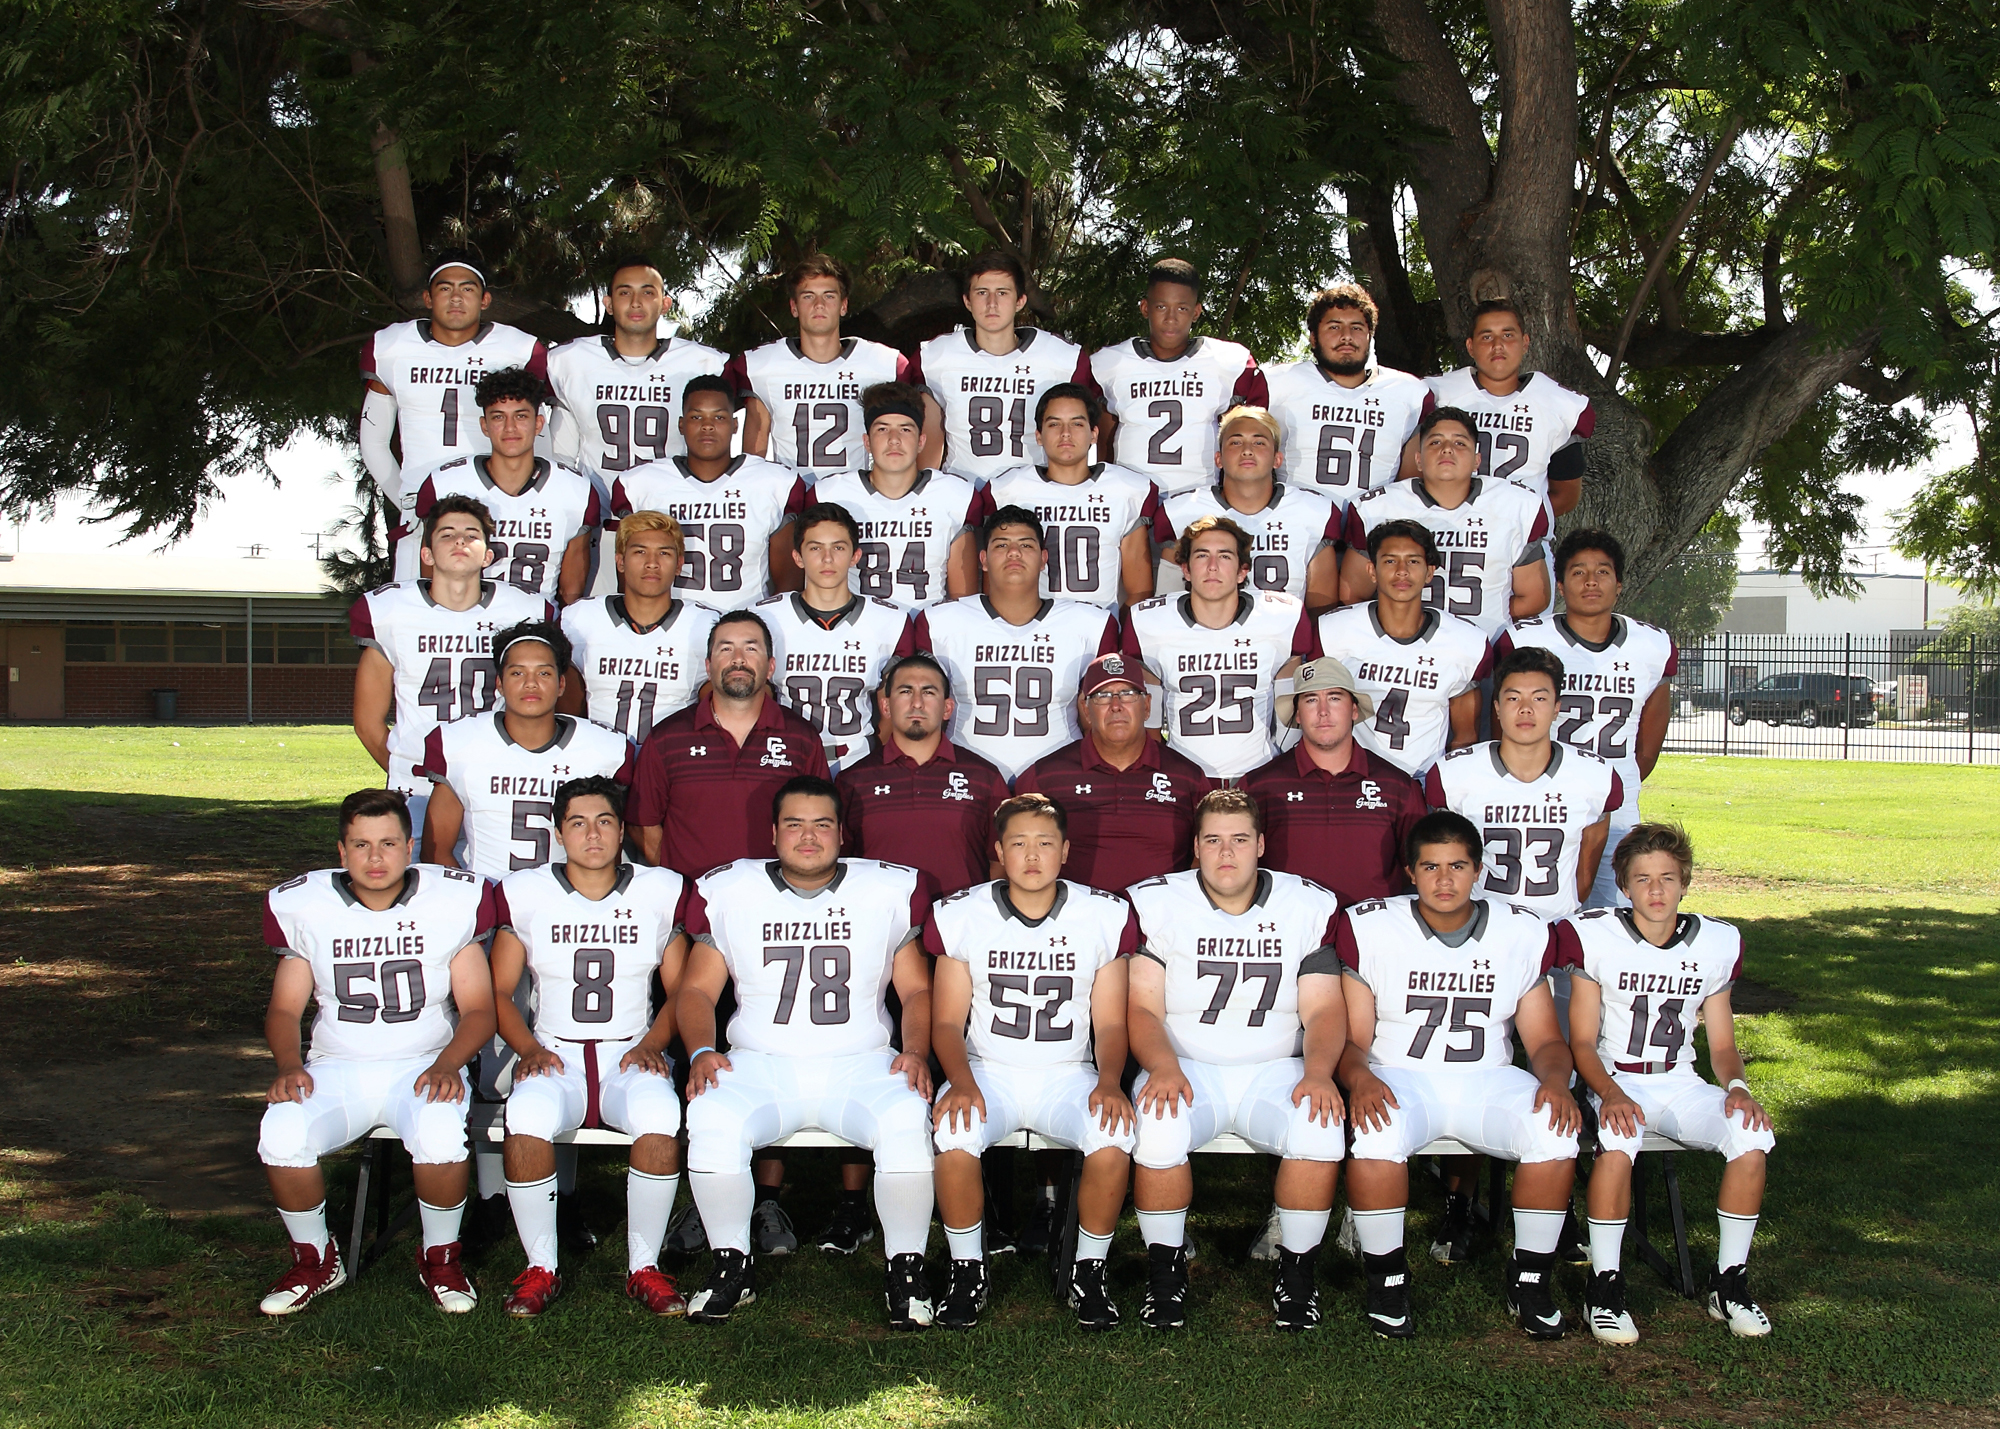 GRIZZLY FOOTBALL HAS A SHOT AT LEAGUE TITLE